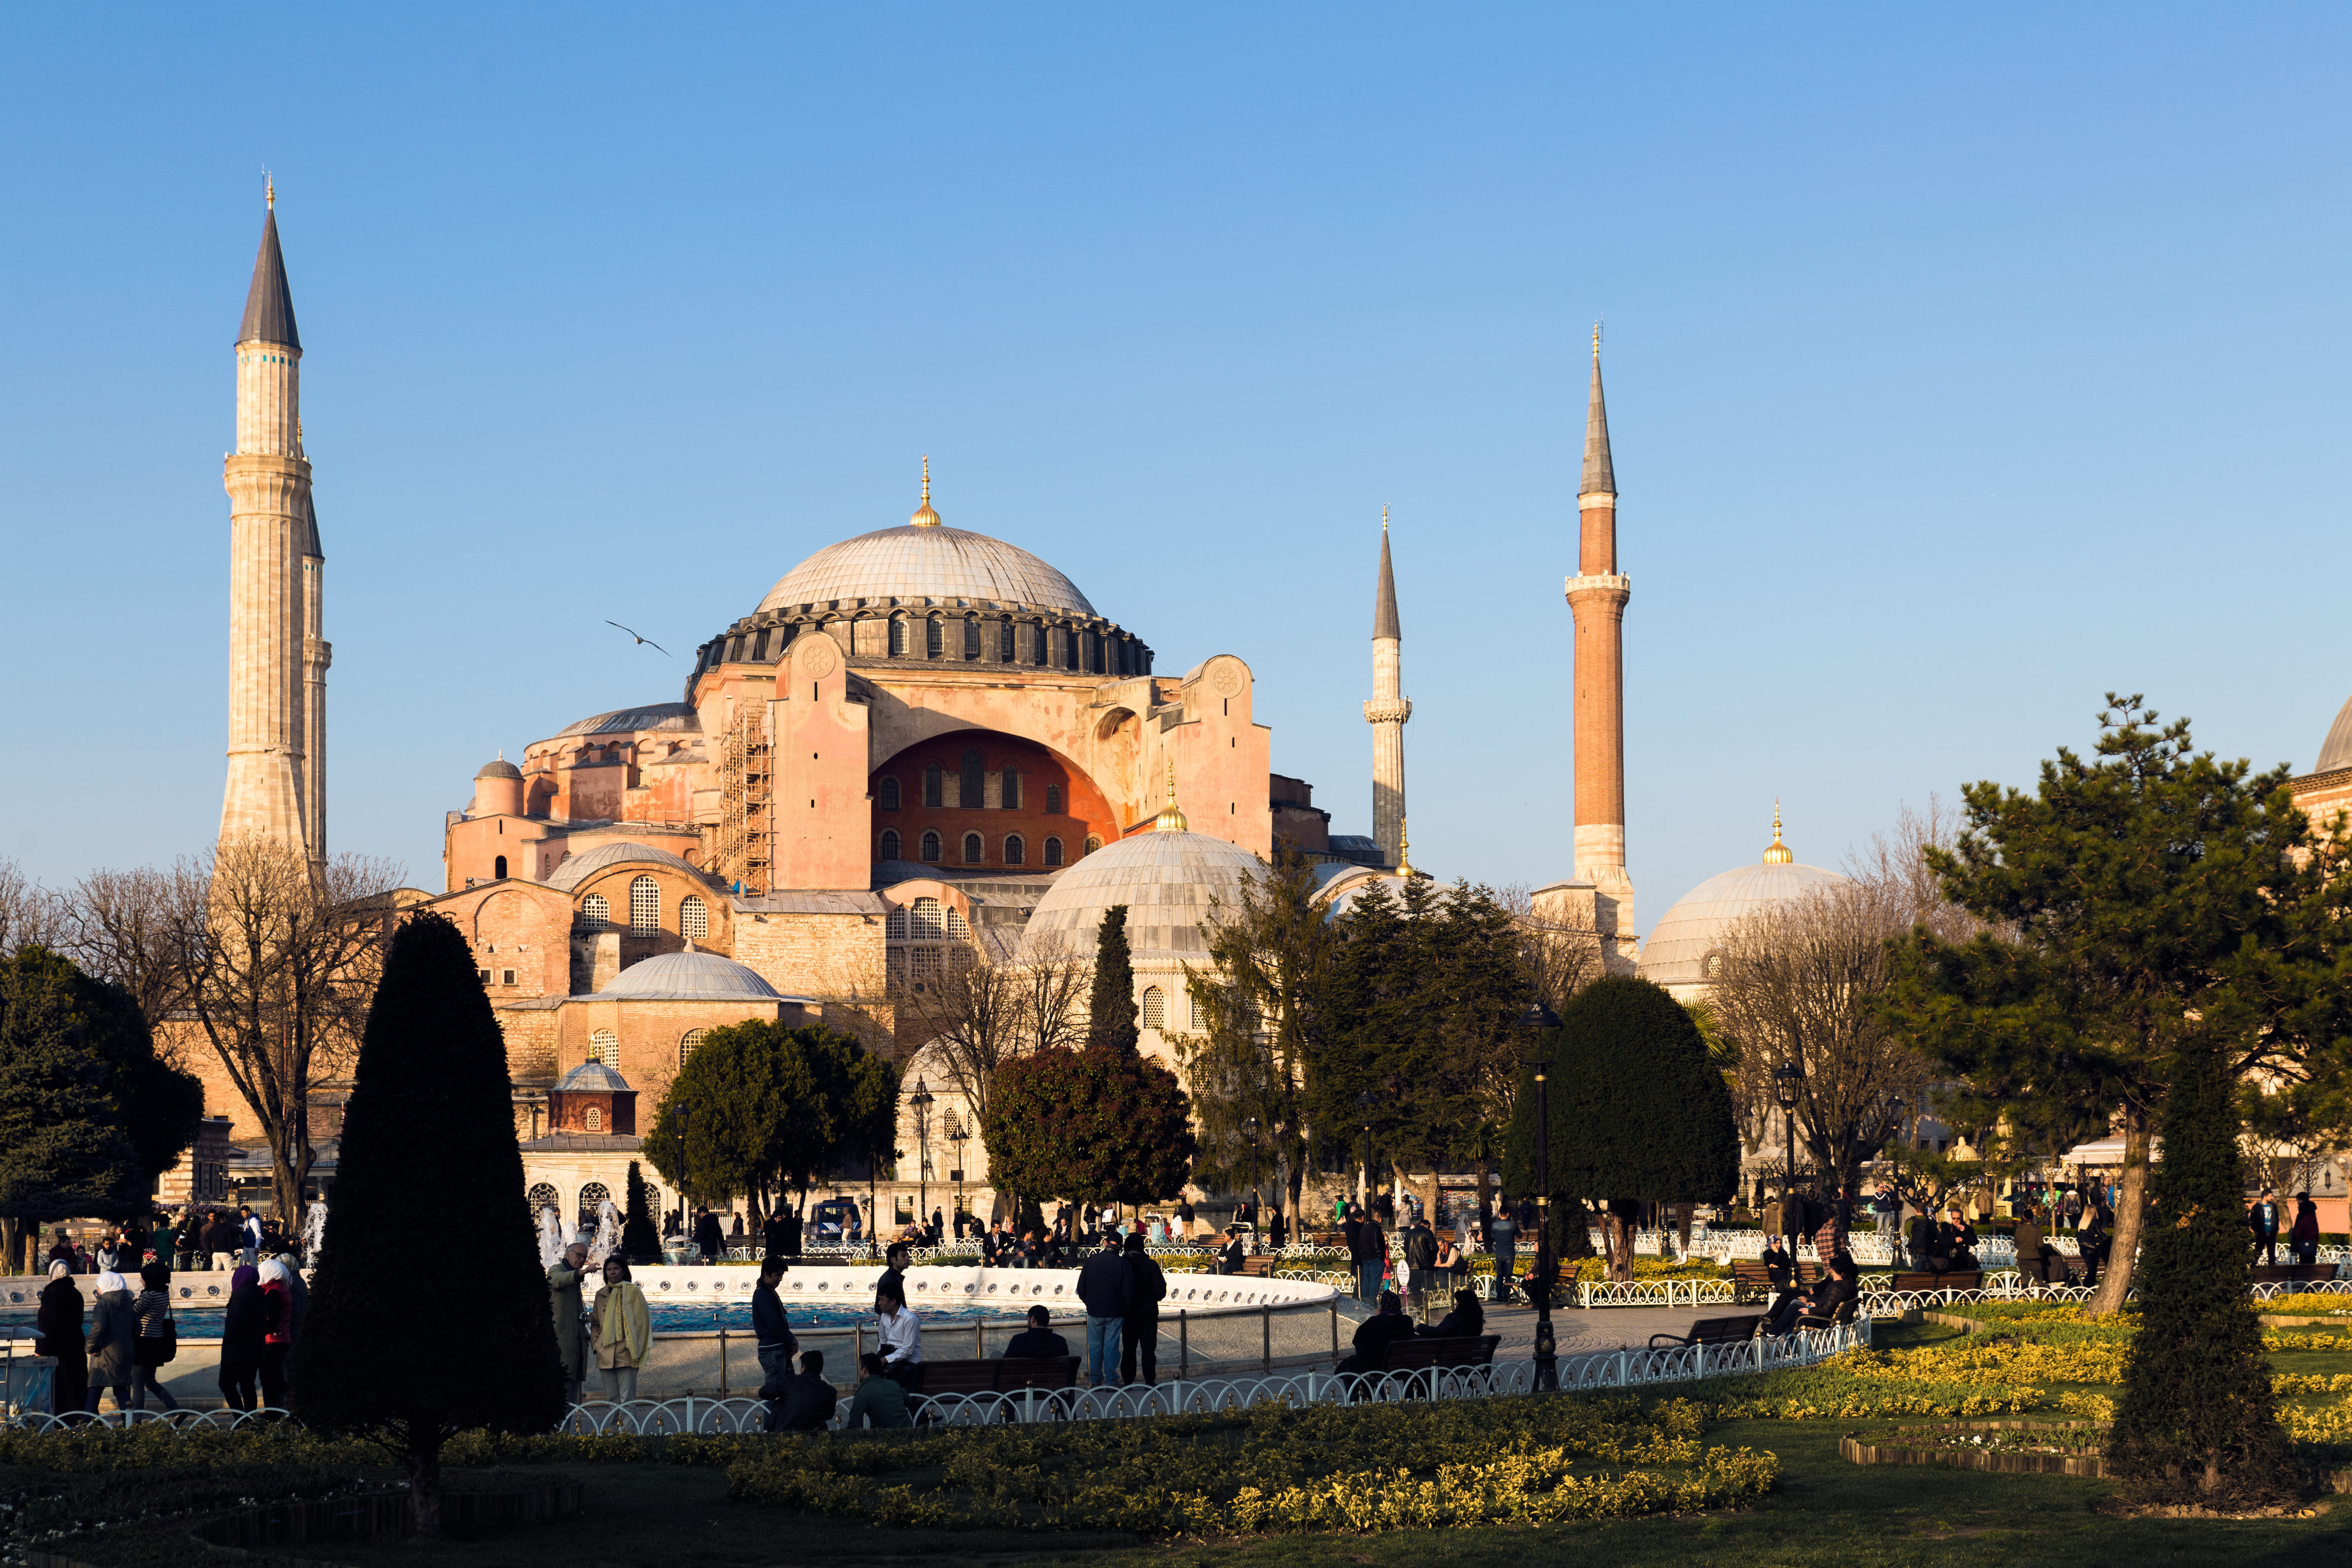 Splendid Hagia Sophia in the afternoon.